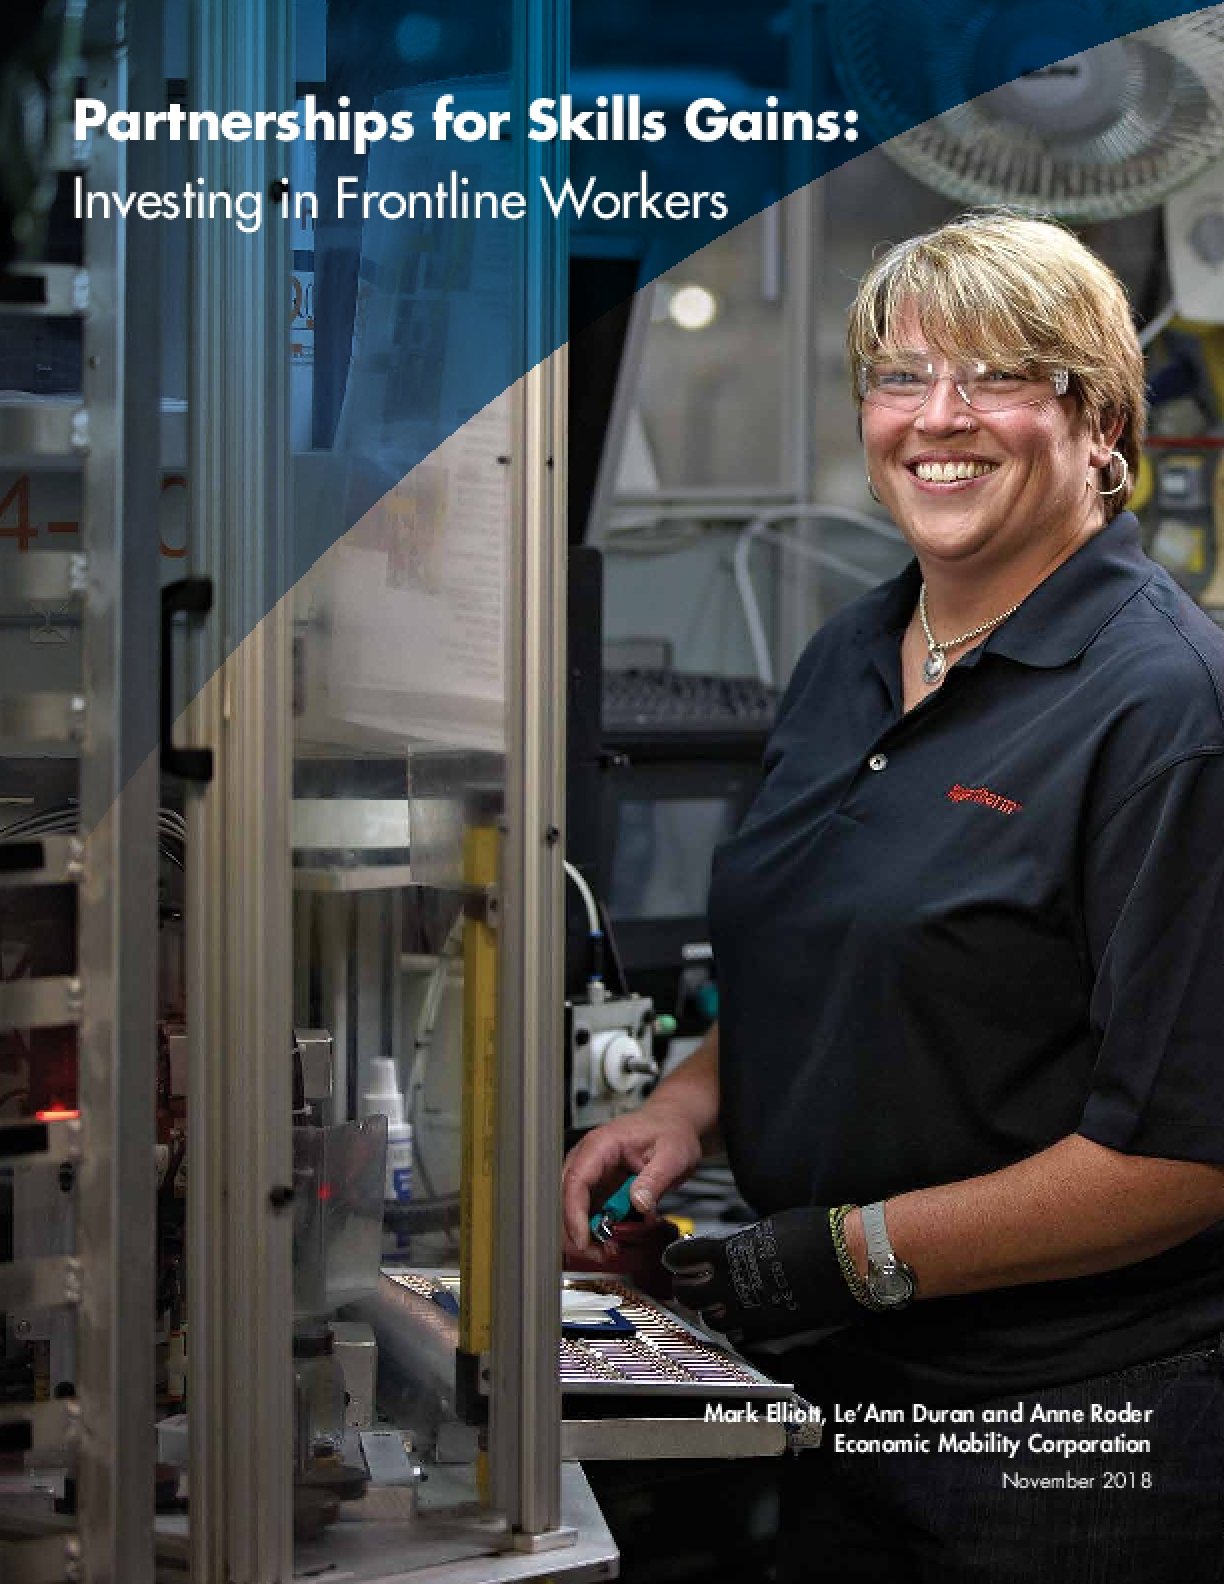 Partnerships for Skills Gains: Investing in Frontline Workers